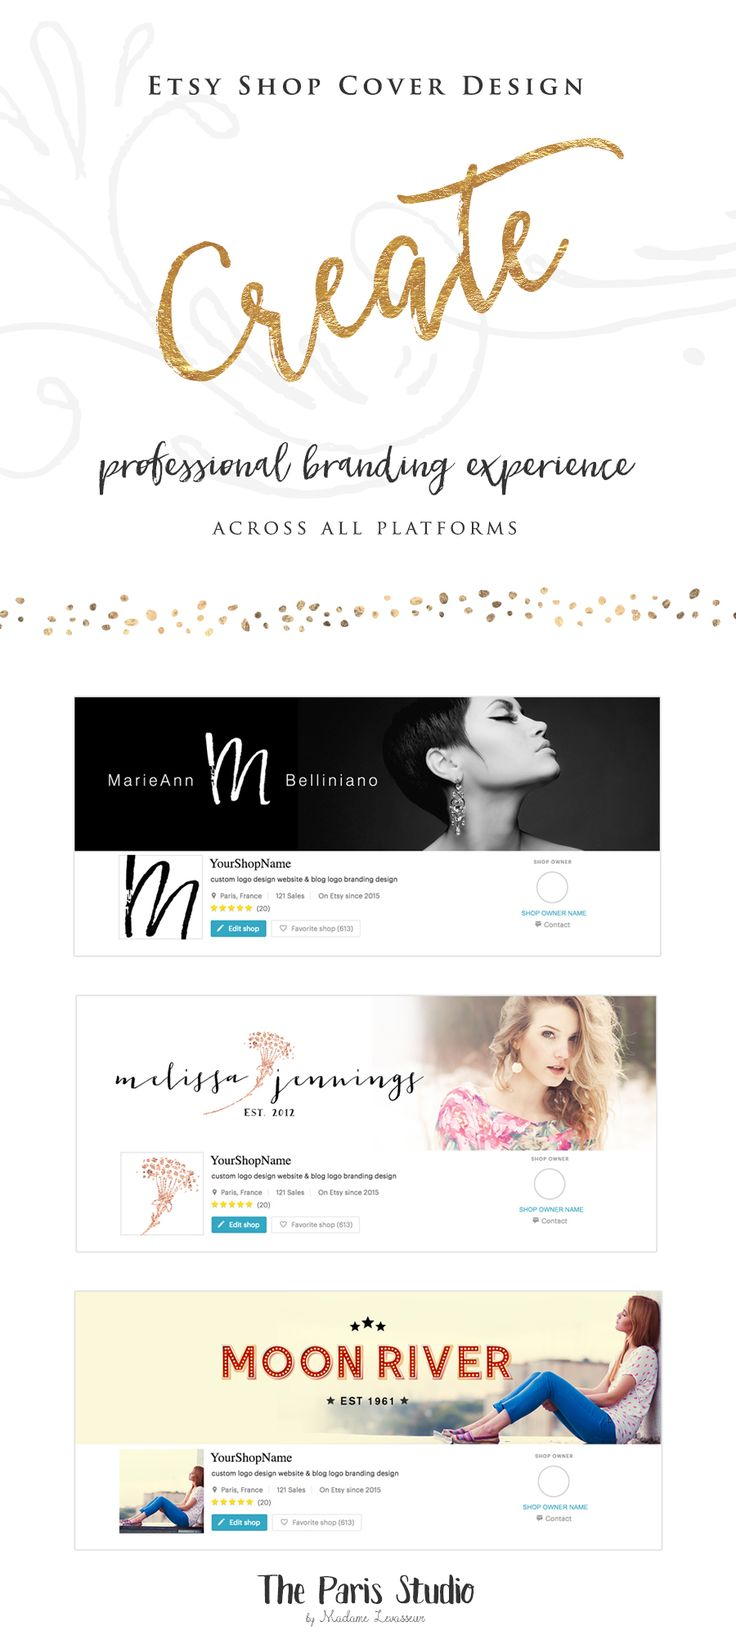 WordPress Website Header Design (Blog Header, Twitter & Facebook Cover Design, Etsy Shop Cover Design) - website branding for creative business by The Paris Studio, Madame Levasseur